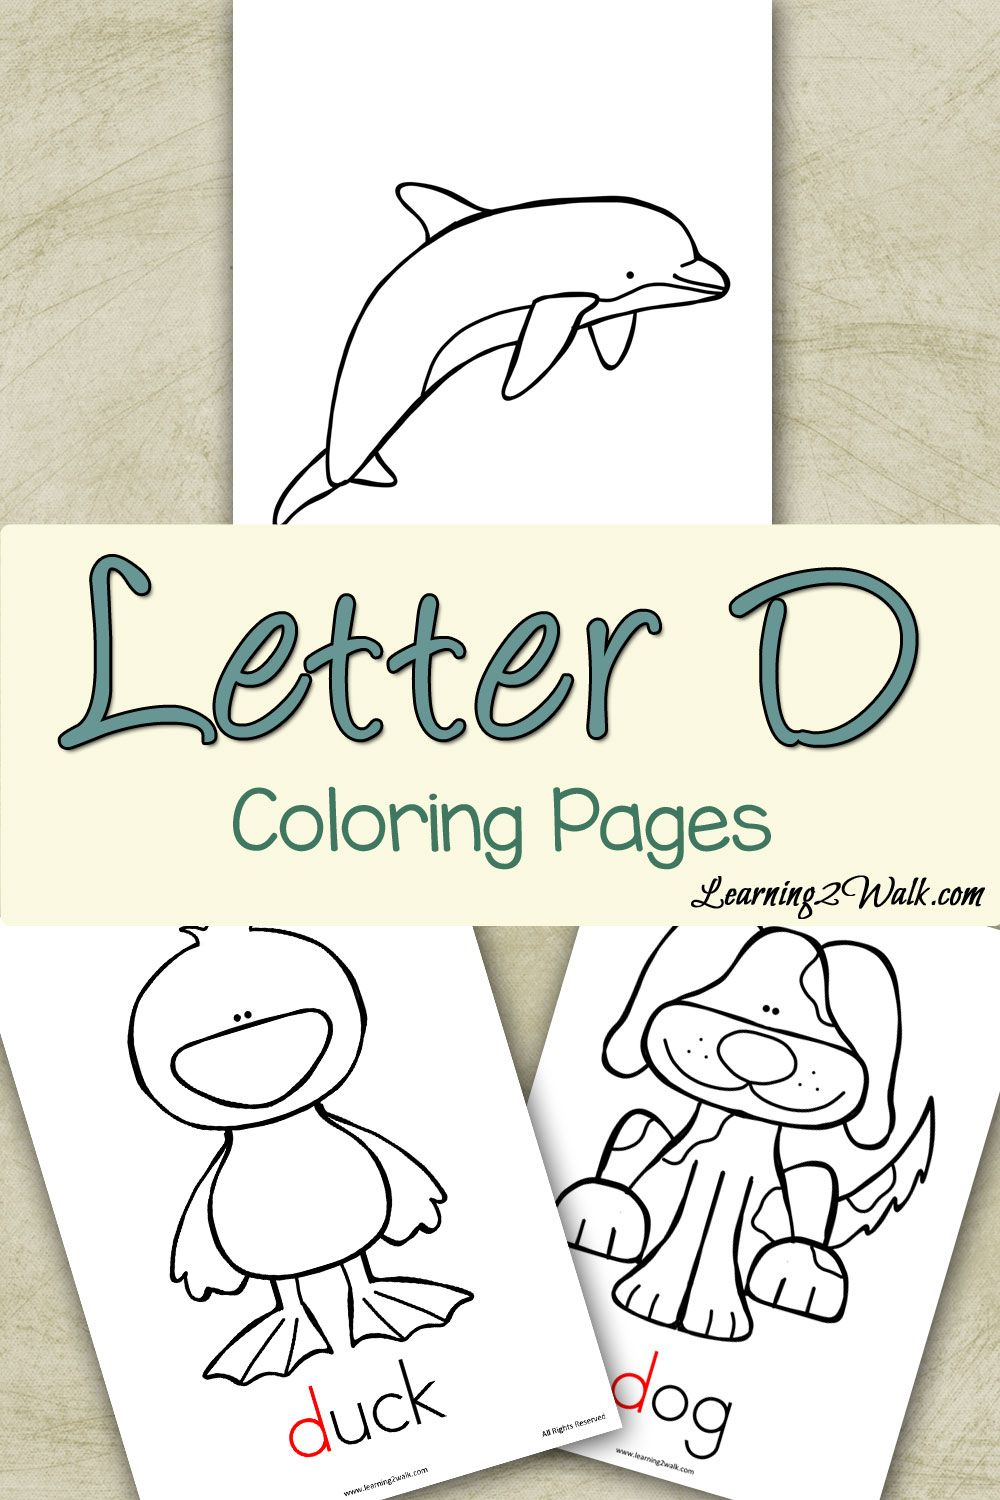 Preschool Letter Activities: Letter D Coloring Pages | Teaching the ...